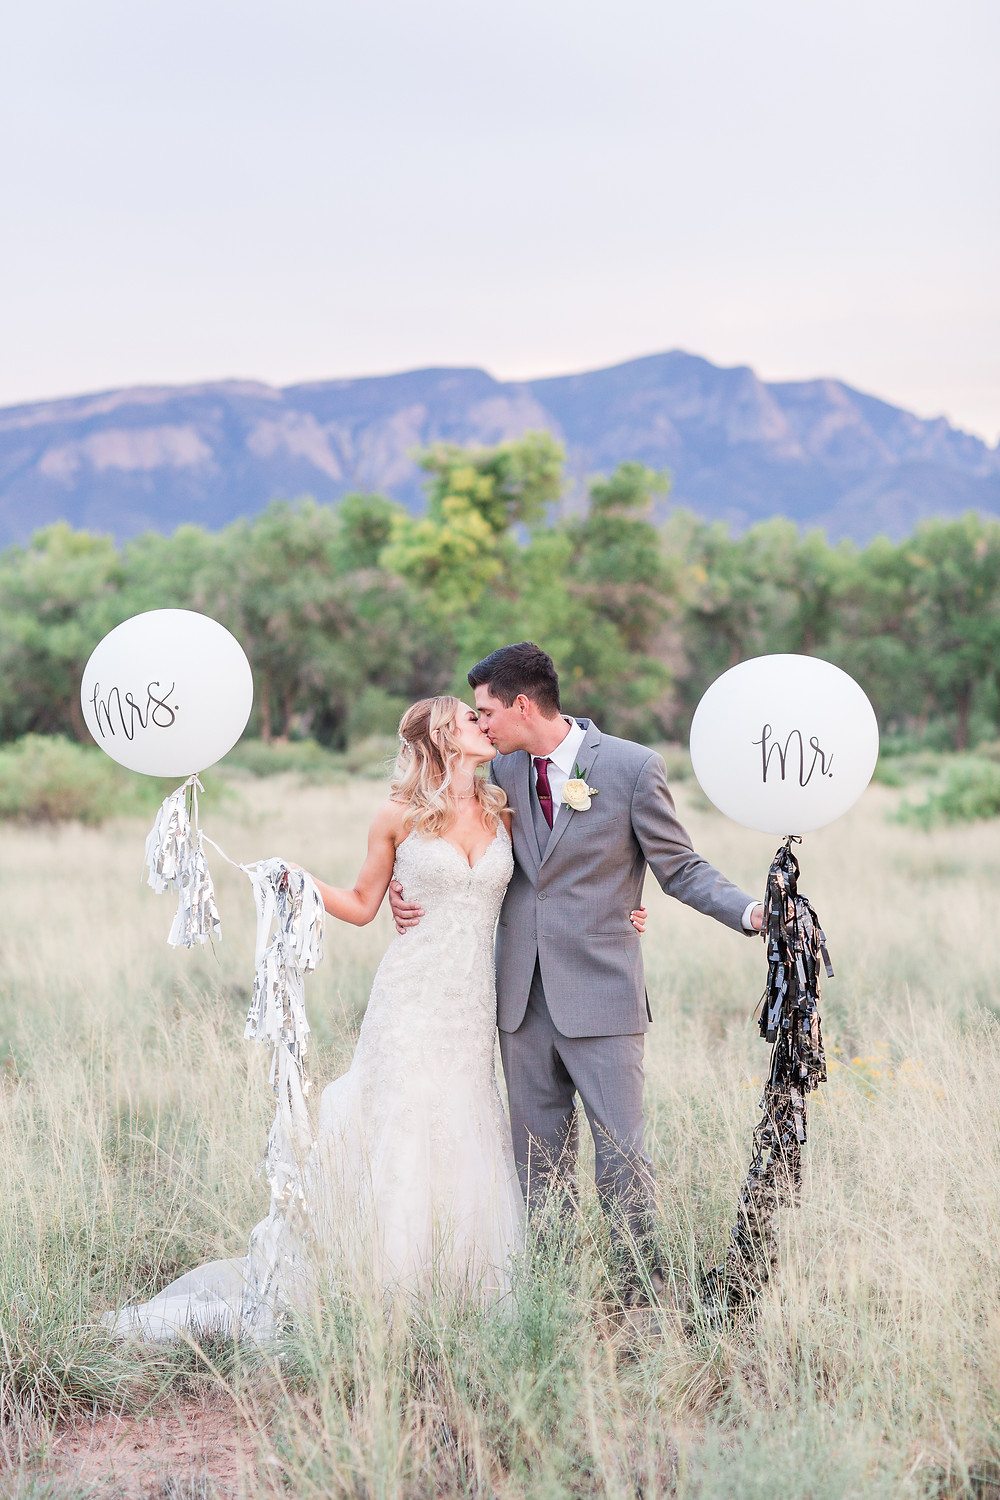 Wedding at Hyatt Tamaya. Outdoor wedding New Mexco. New Mexico Wedding photographer. maura Jane photography. burgundy wedding. bride and groom photos. sunset photos. mr and mrs balloon. kate spade wedding balloon